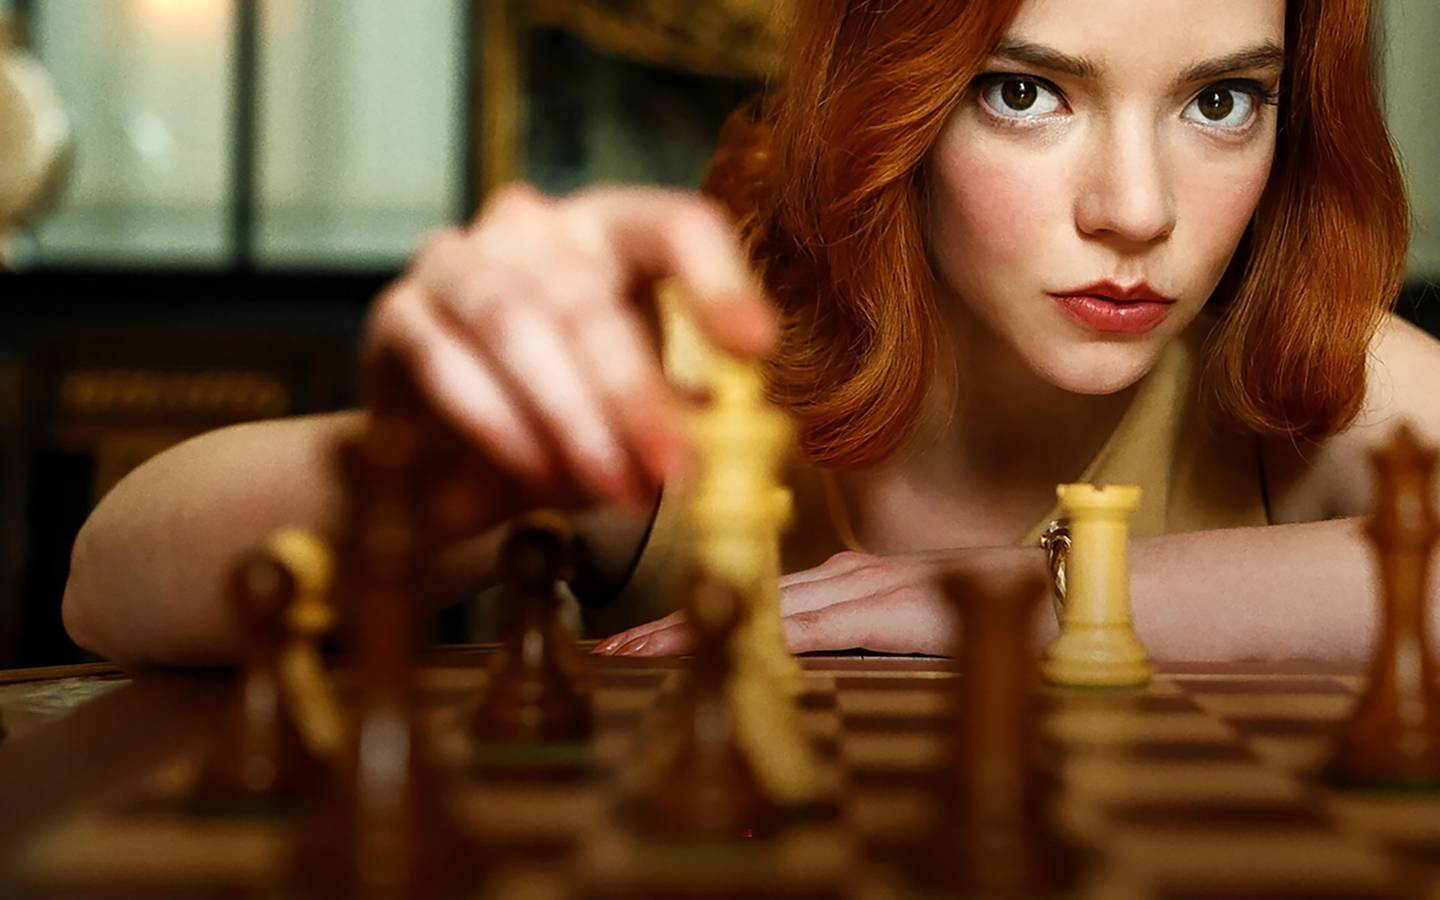 In its first month on Netflix, it is understood The Queen's Gambit was watched in 62 million households. Photo / Supplied